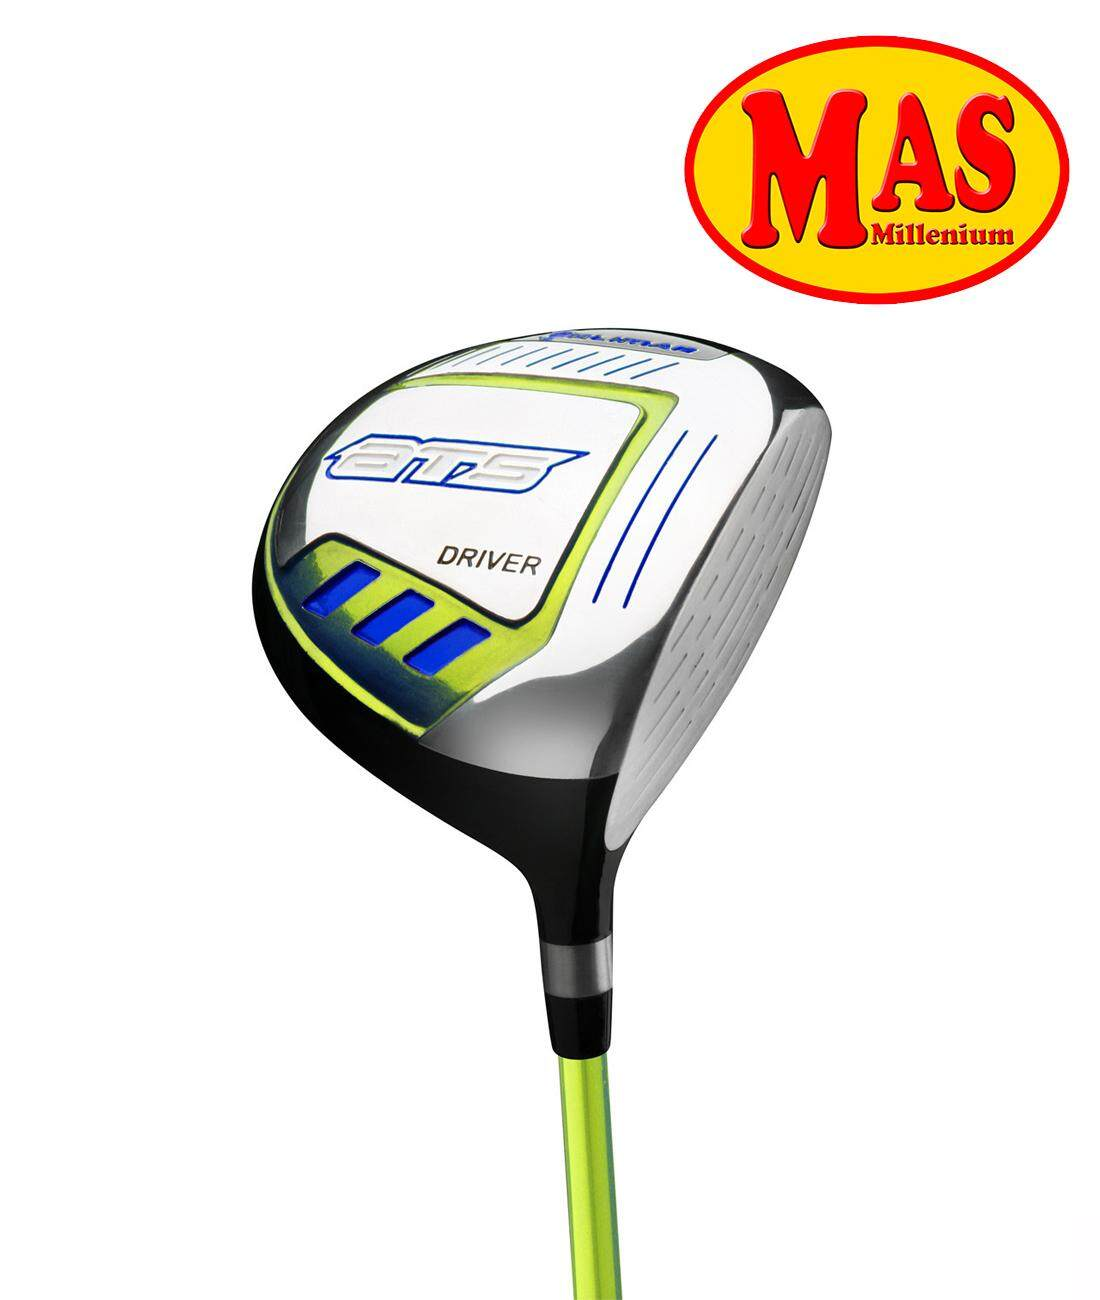 Orlimar Ats Junior Boys Lime/blue Driver (rh Ages 3-5) By Mas Millenium Golf.